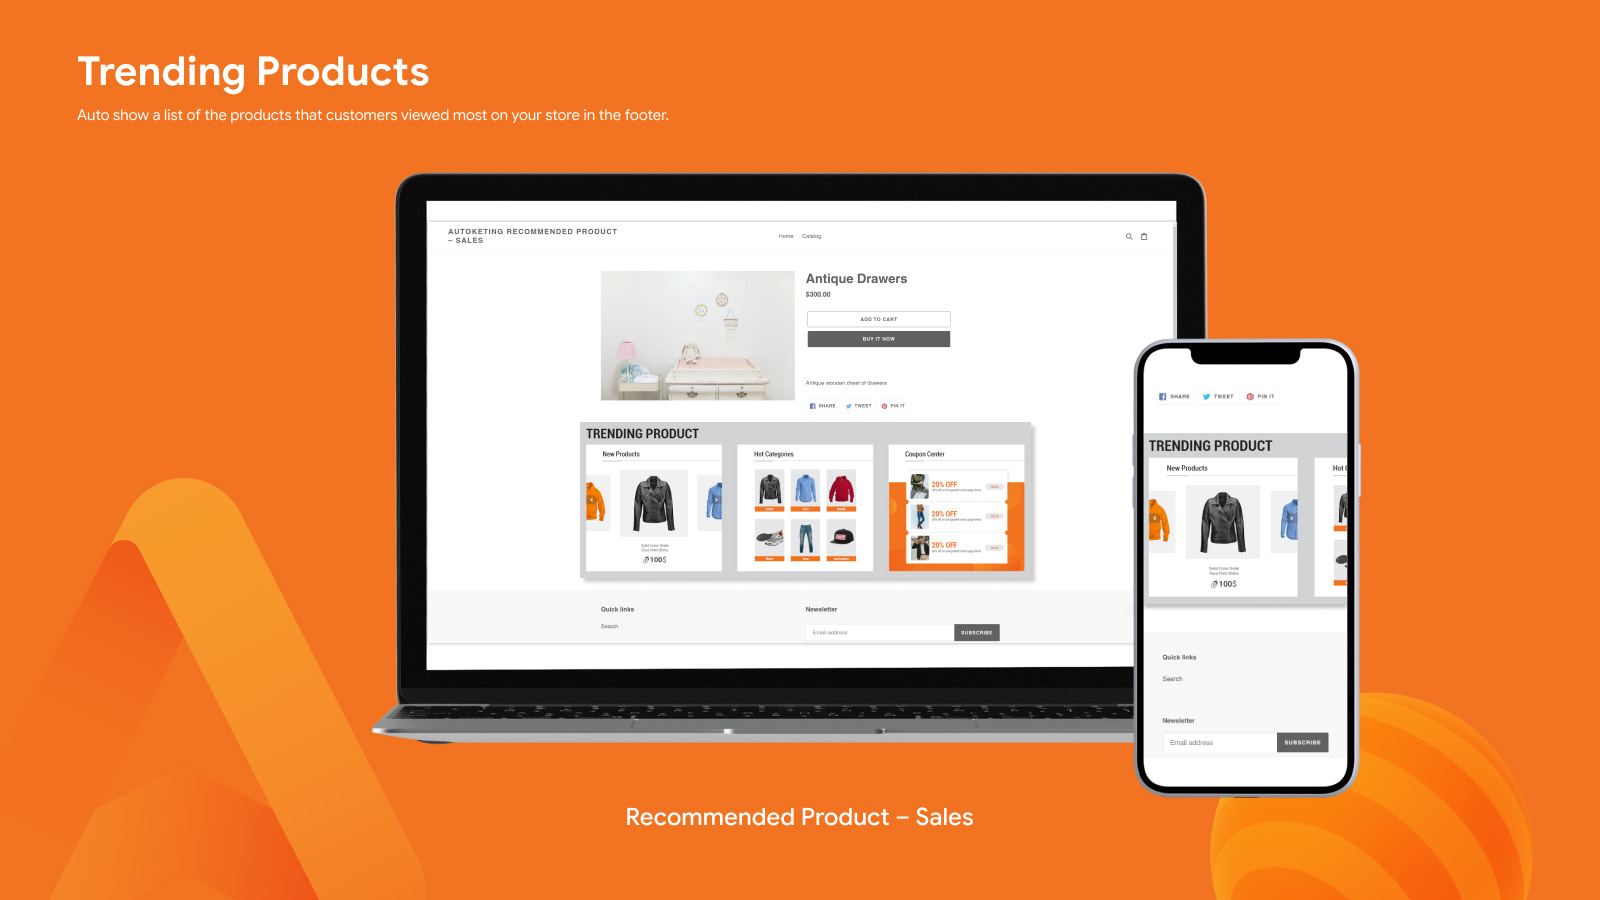 TRENDING PRODUCT - RECOMMENDED PRODUCTS